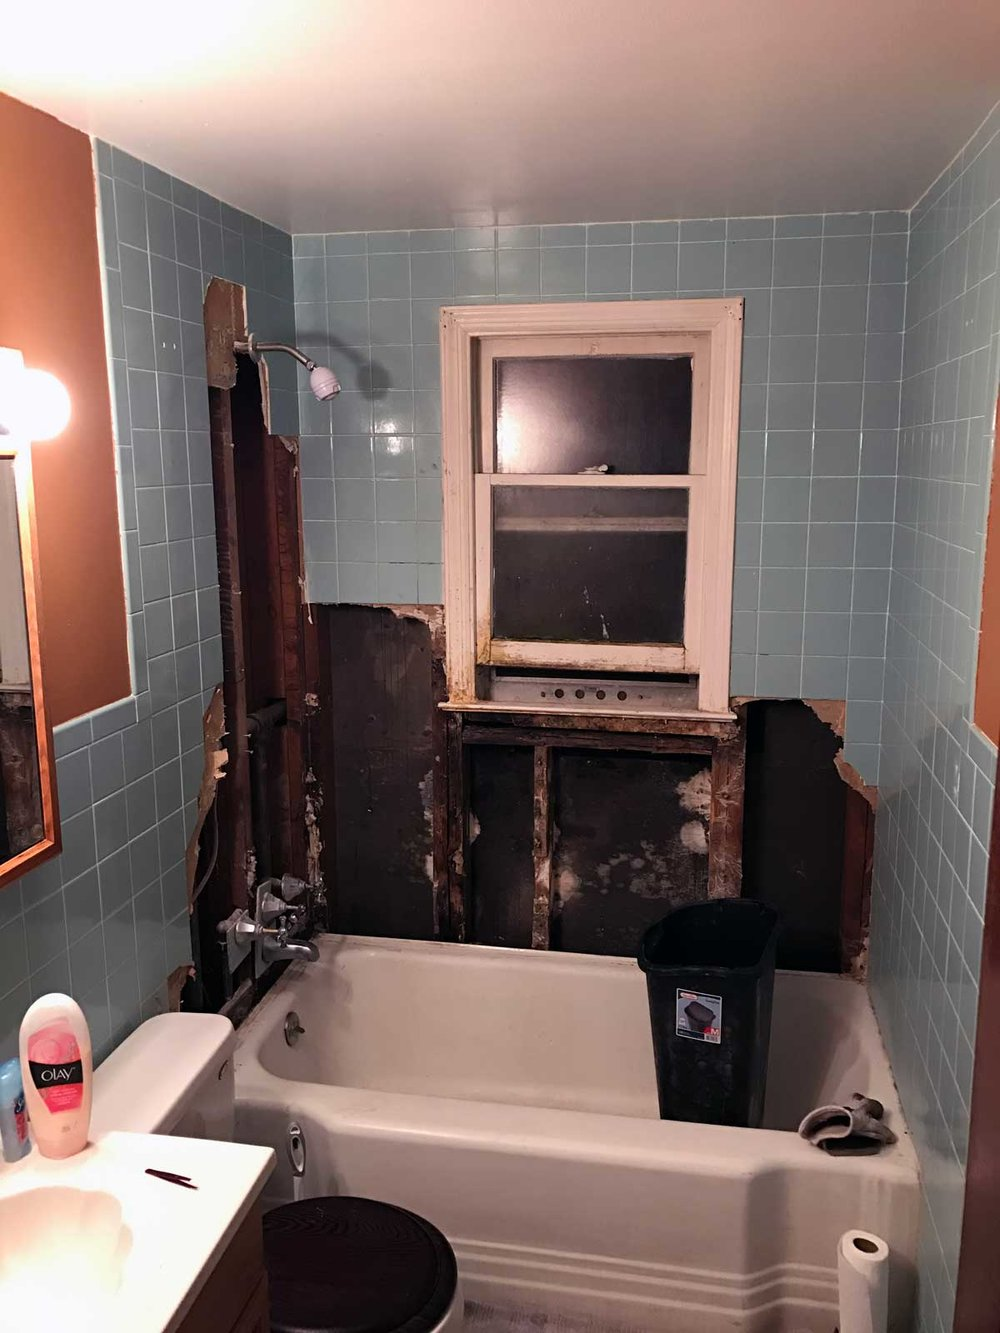 15-Day-Bathroom-Renovation-04.jpg